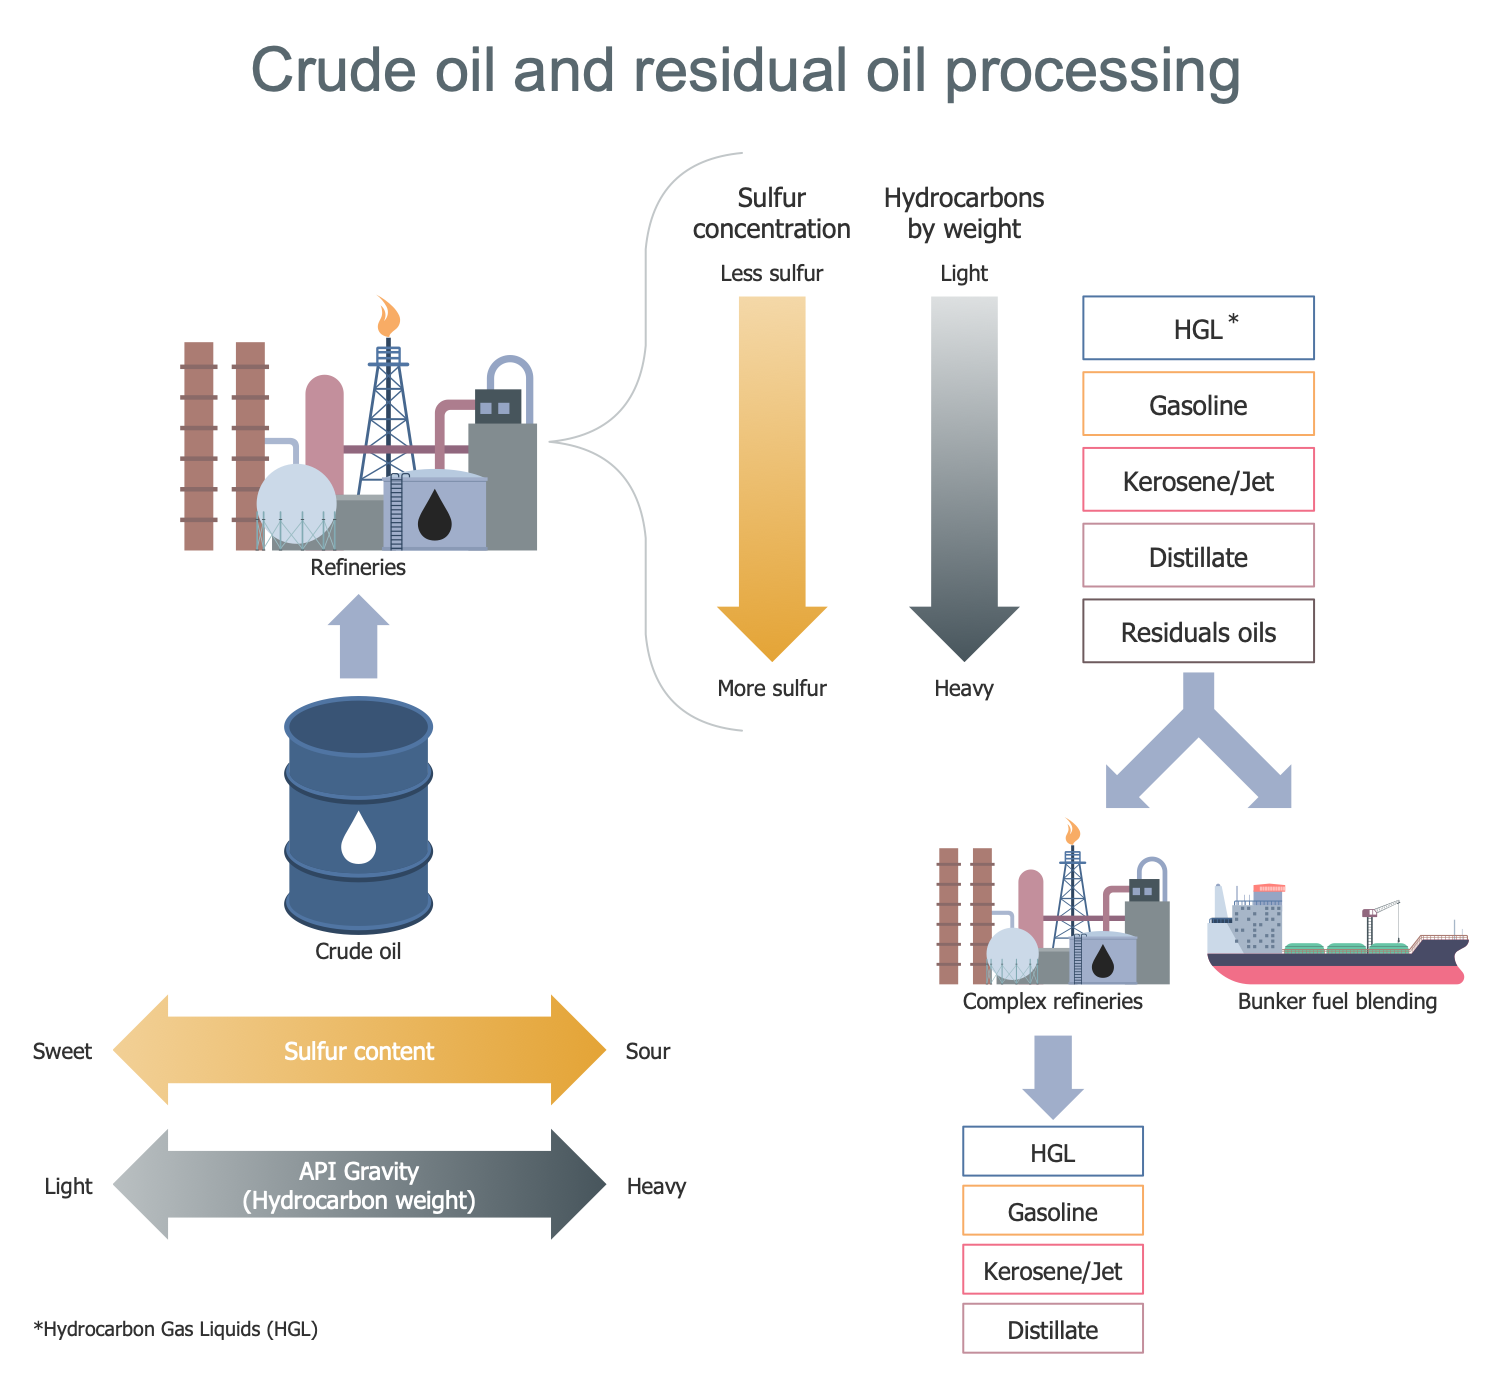 Crude Oil and Residual Oil Processing